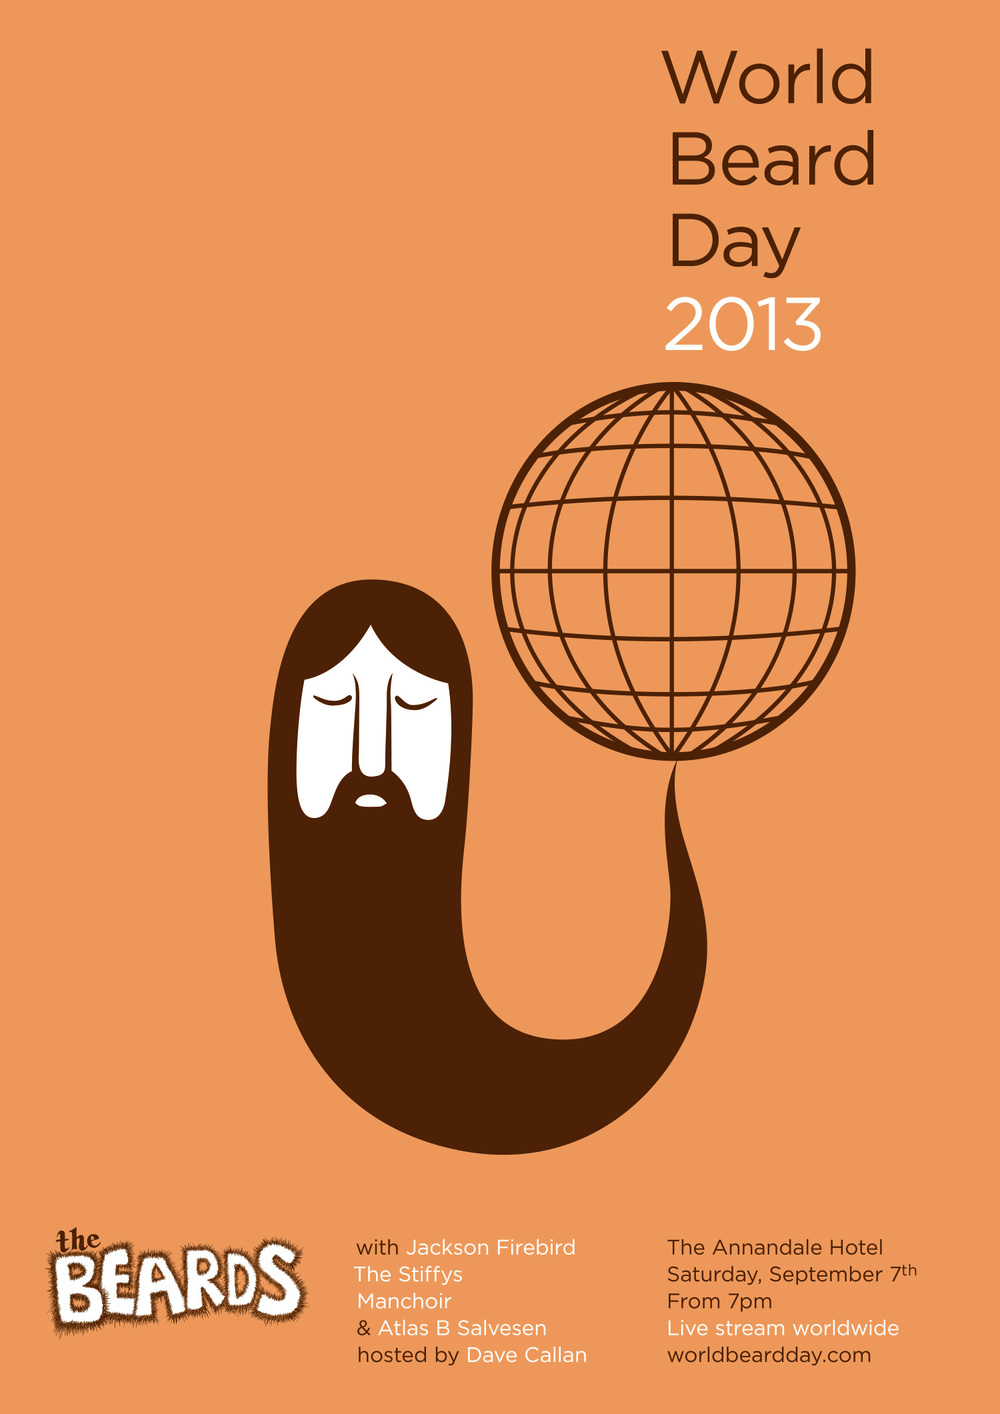 world-beard-day-poster-the-beards.jpg